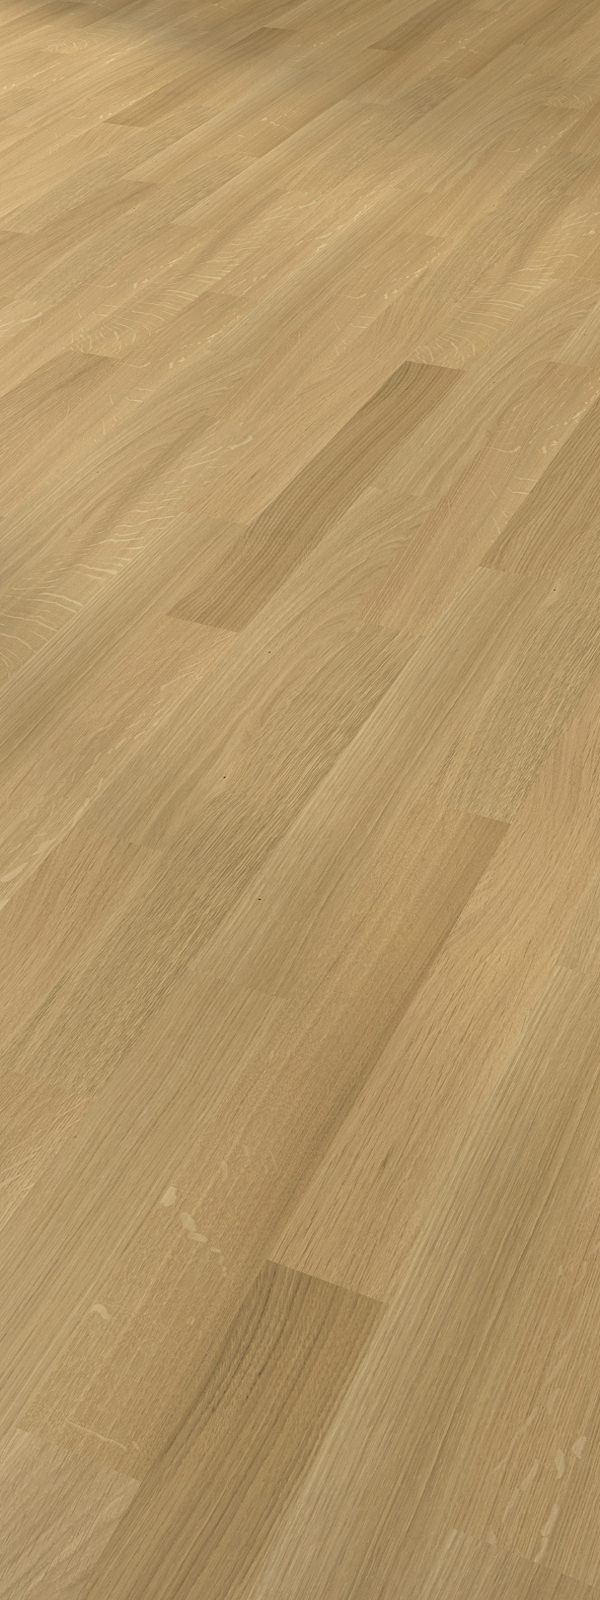 Board PREMIUM FLOOR HERRINGBONE Oak